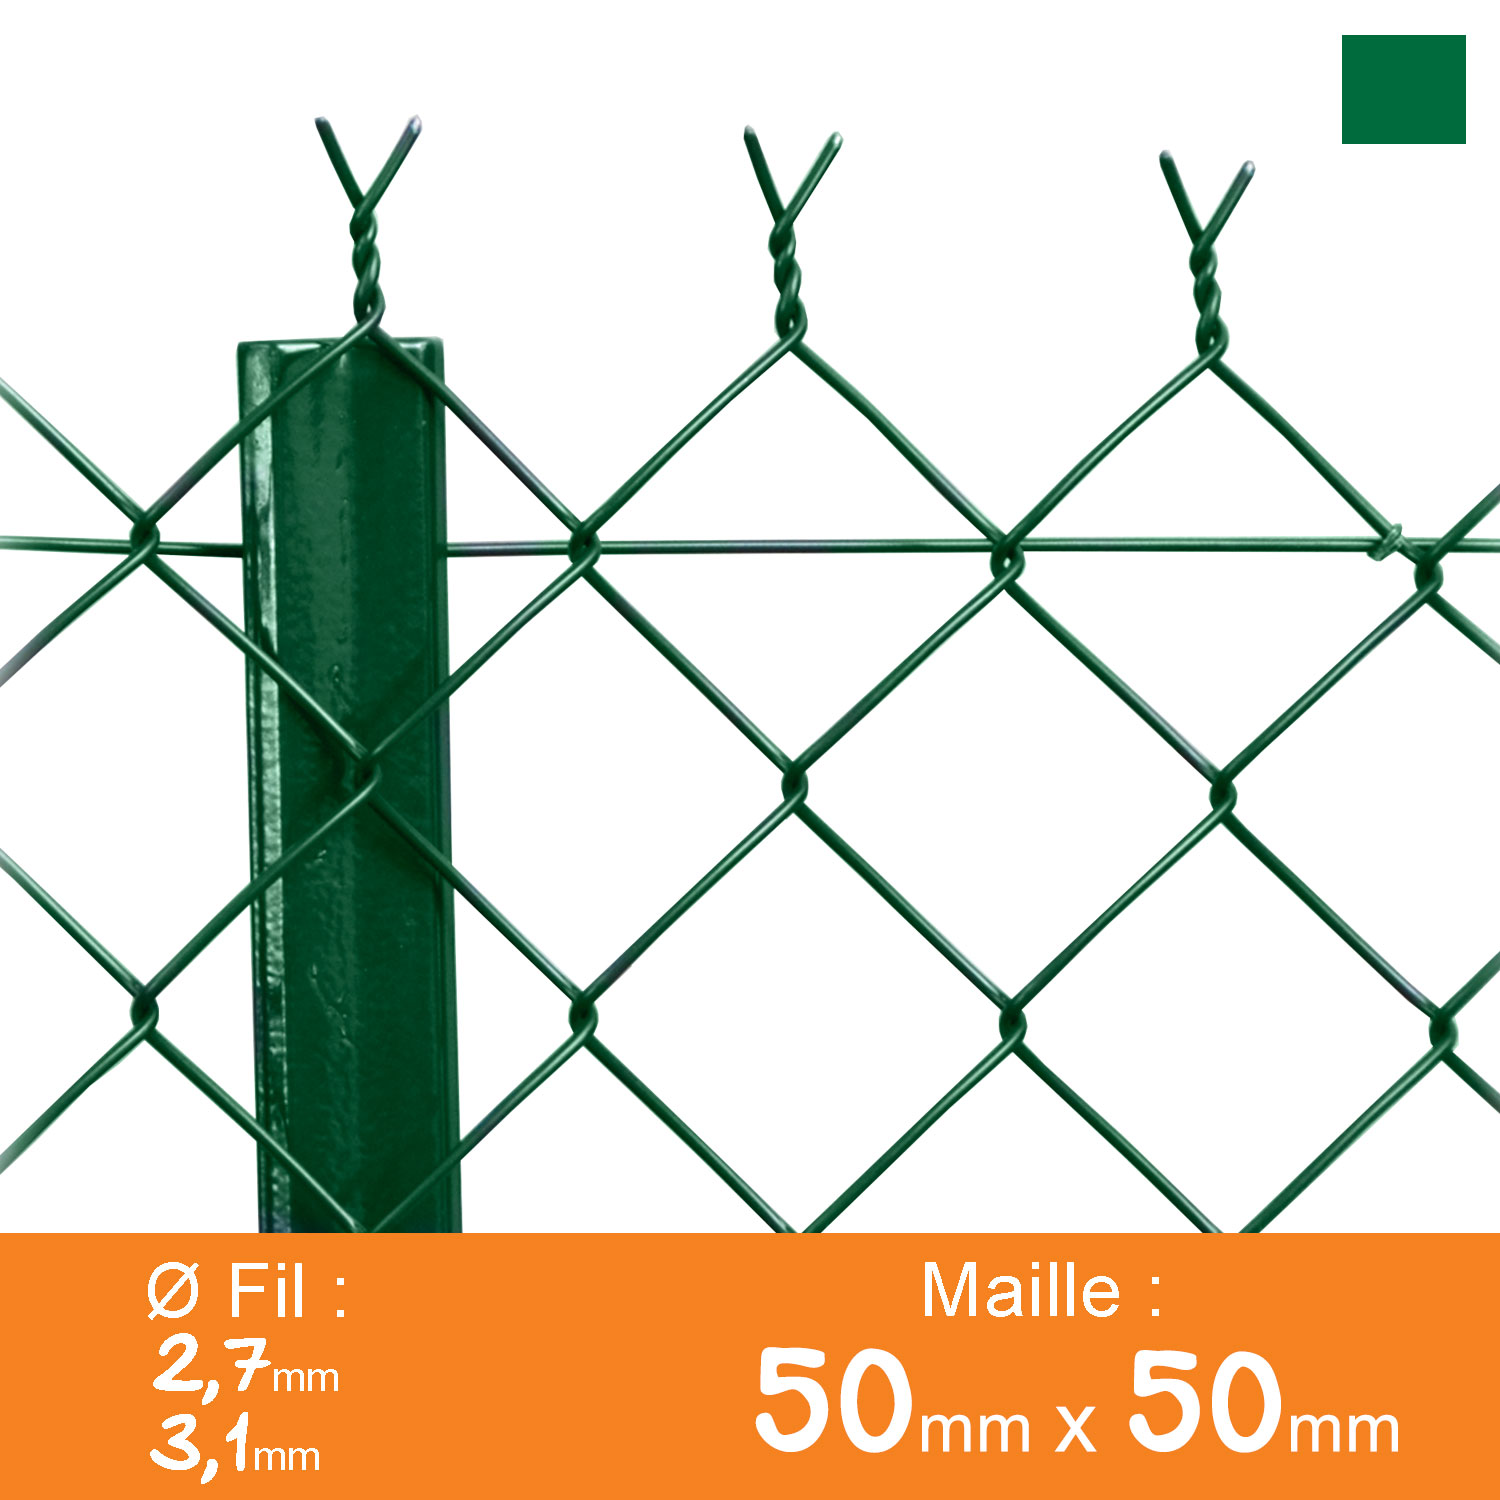 Grillage simple torsion 50 x 50 mm - Ø 2,7 / 3,1 mm - Lg. 25 m Vert